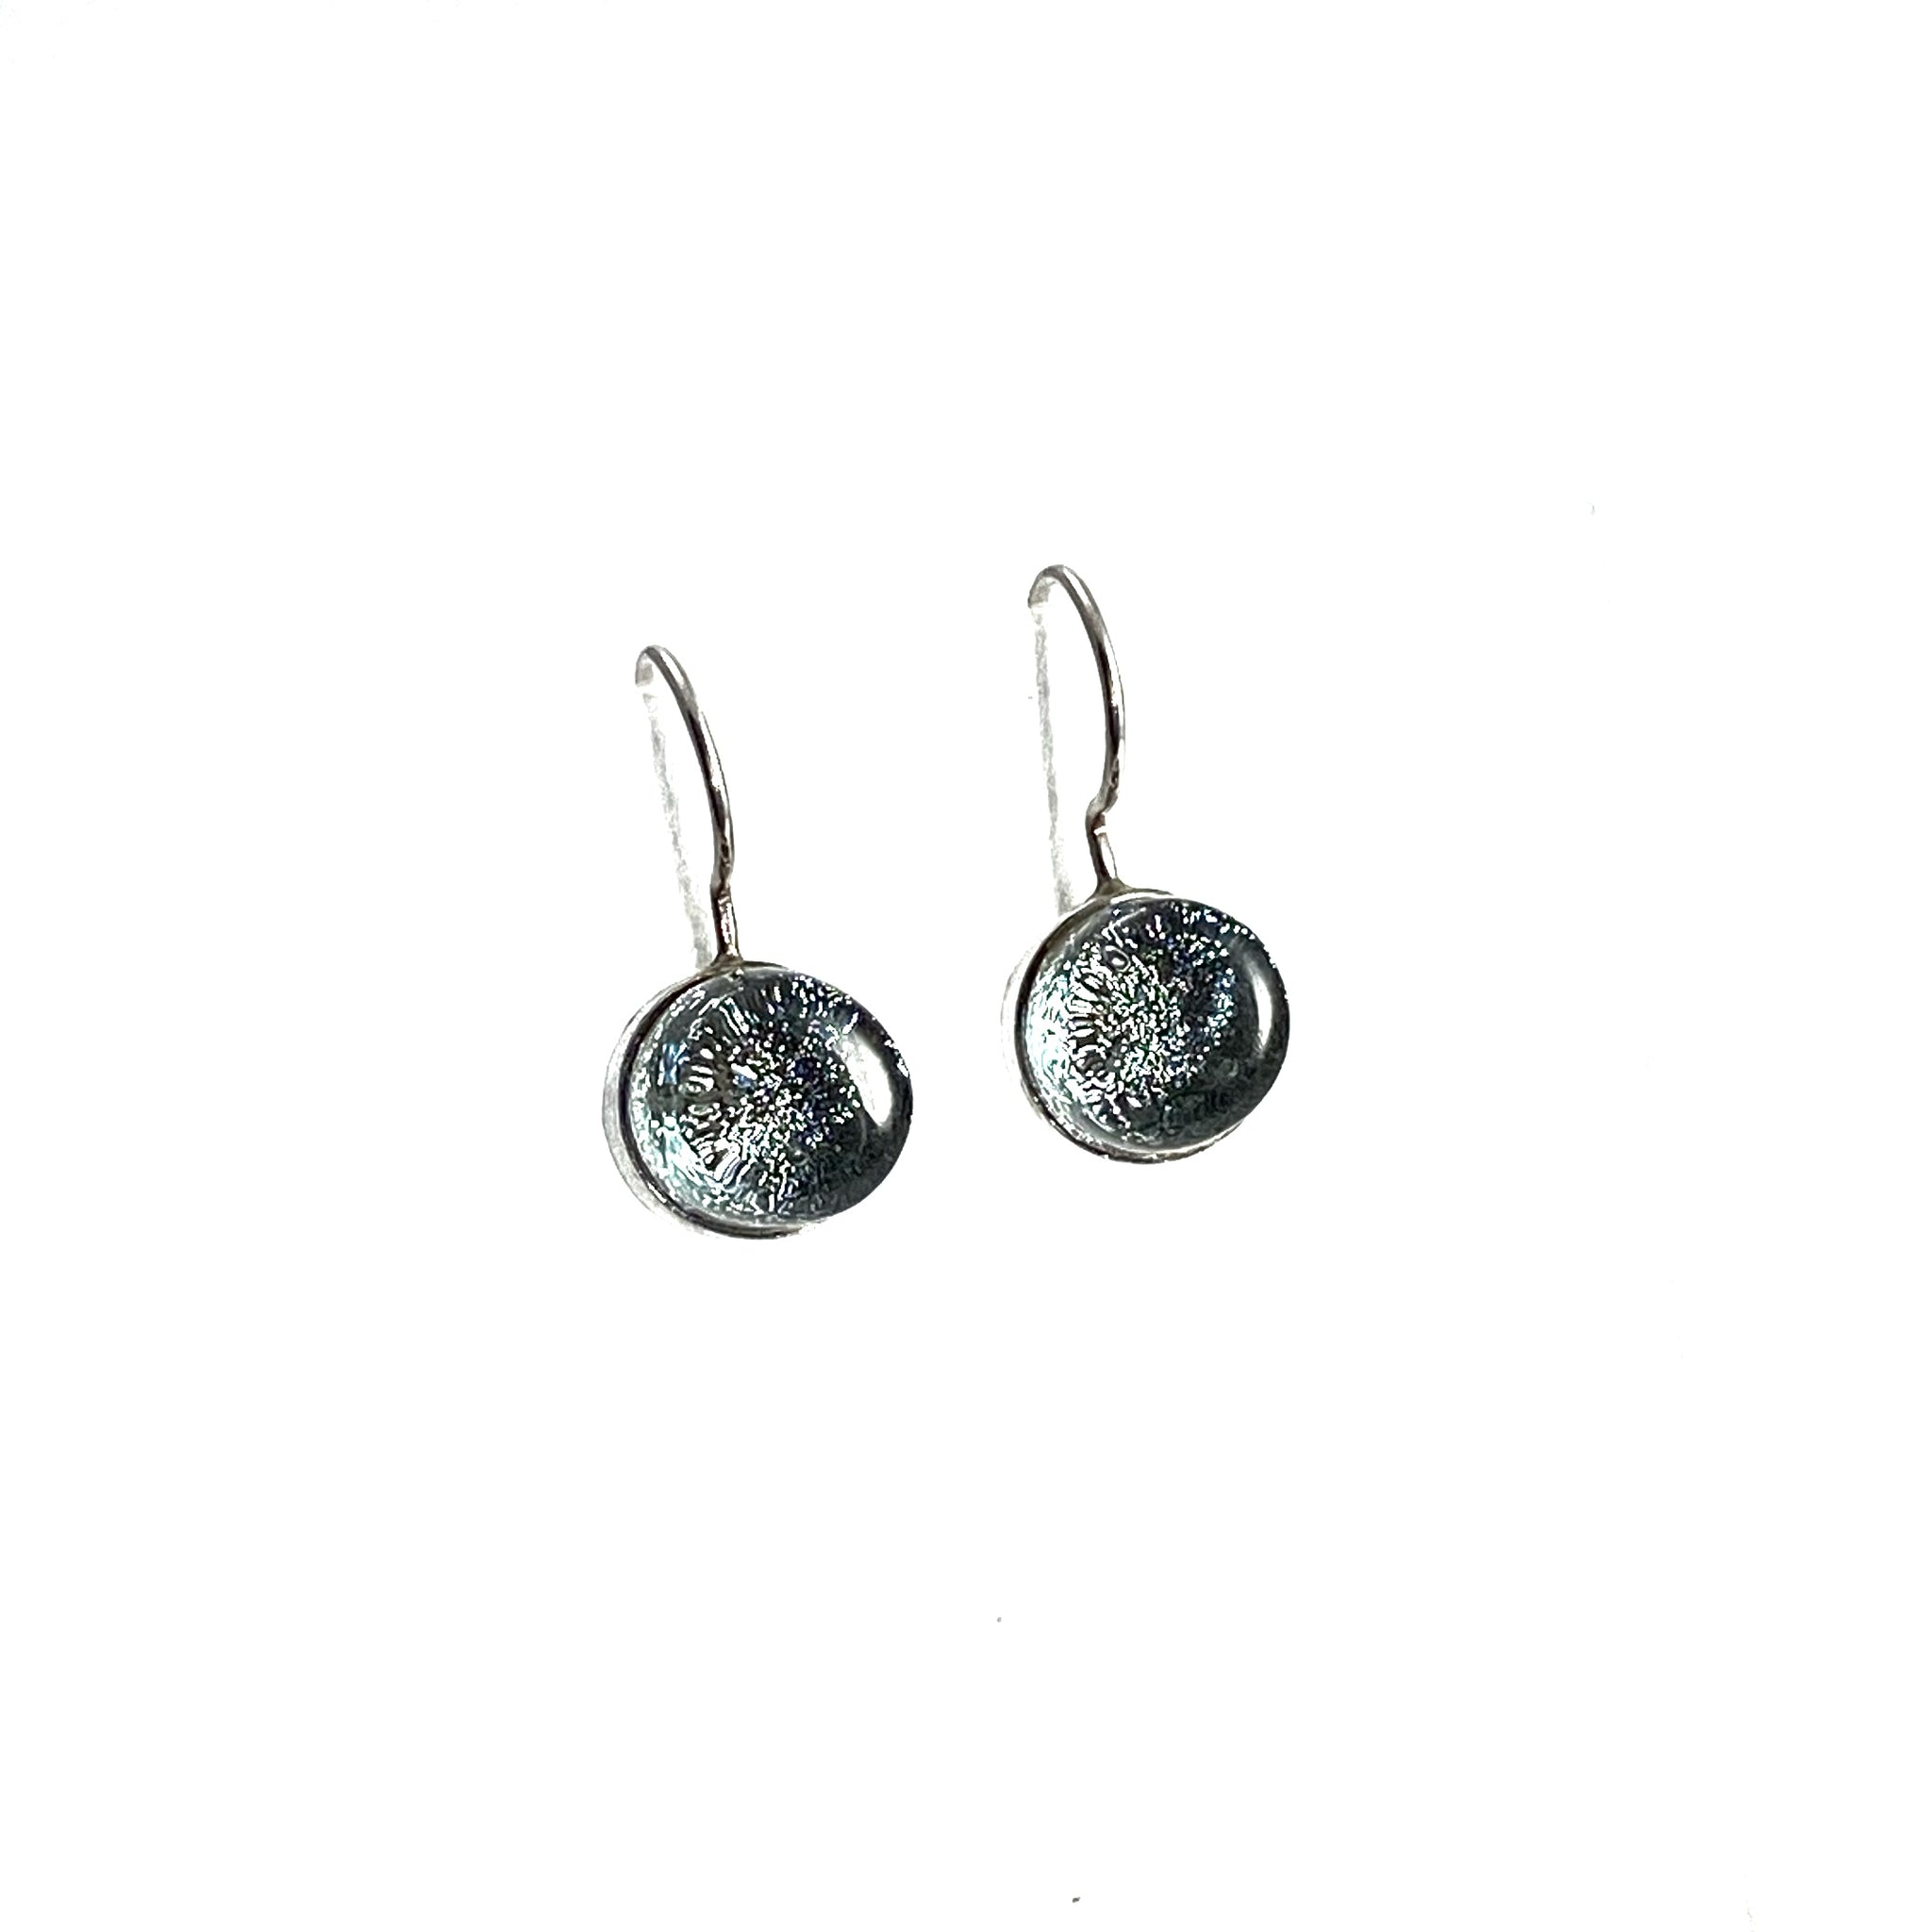 platinum, gray, circle earrings, fused glass, glass jewelry, glass and silver jewelry, handmade, handcrafted, American Craft, hand fabricated jewelry, hand fabricated jewellery,  Athen, Georgia, colorful jewelry, sparkle, bullseye glass, dichroic glass, art jewelry